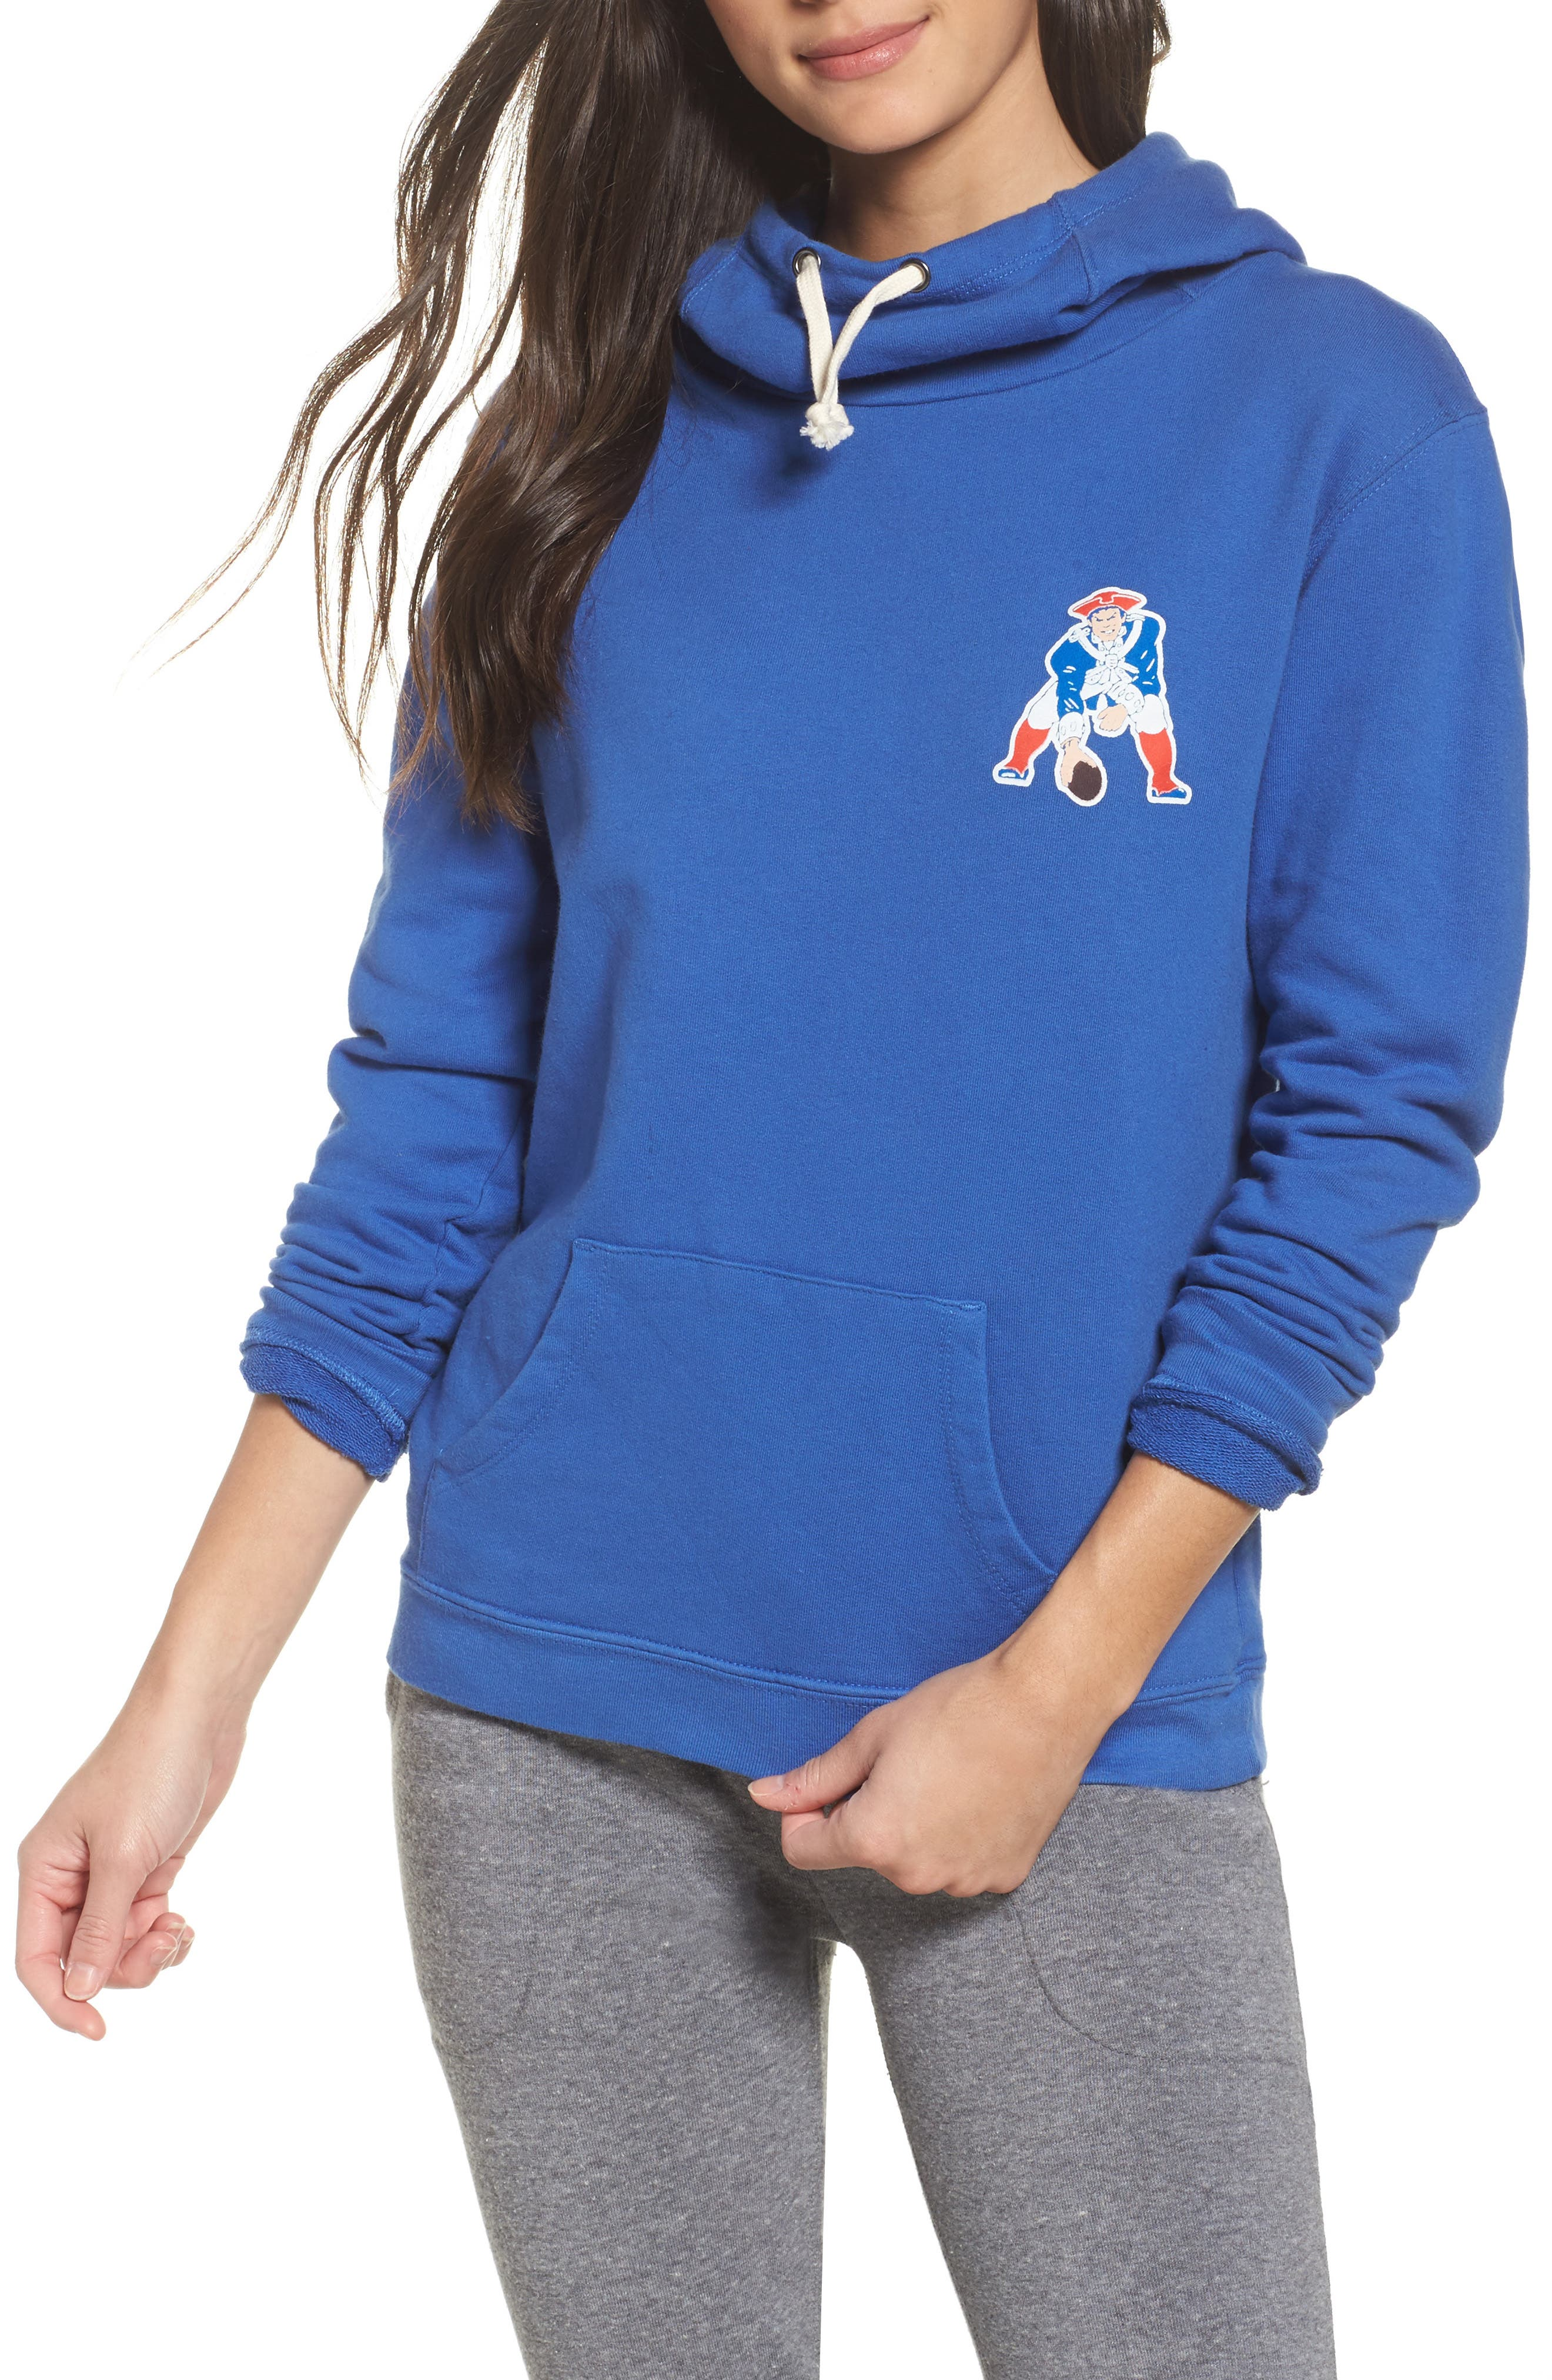 Main Image - Junk Food NFL New England Patriots Sunday Hoodie